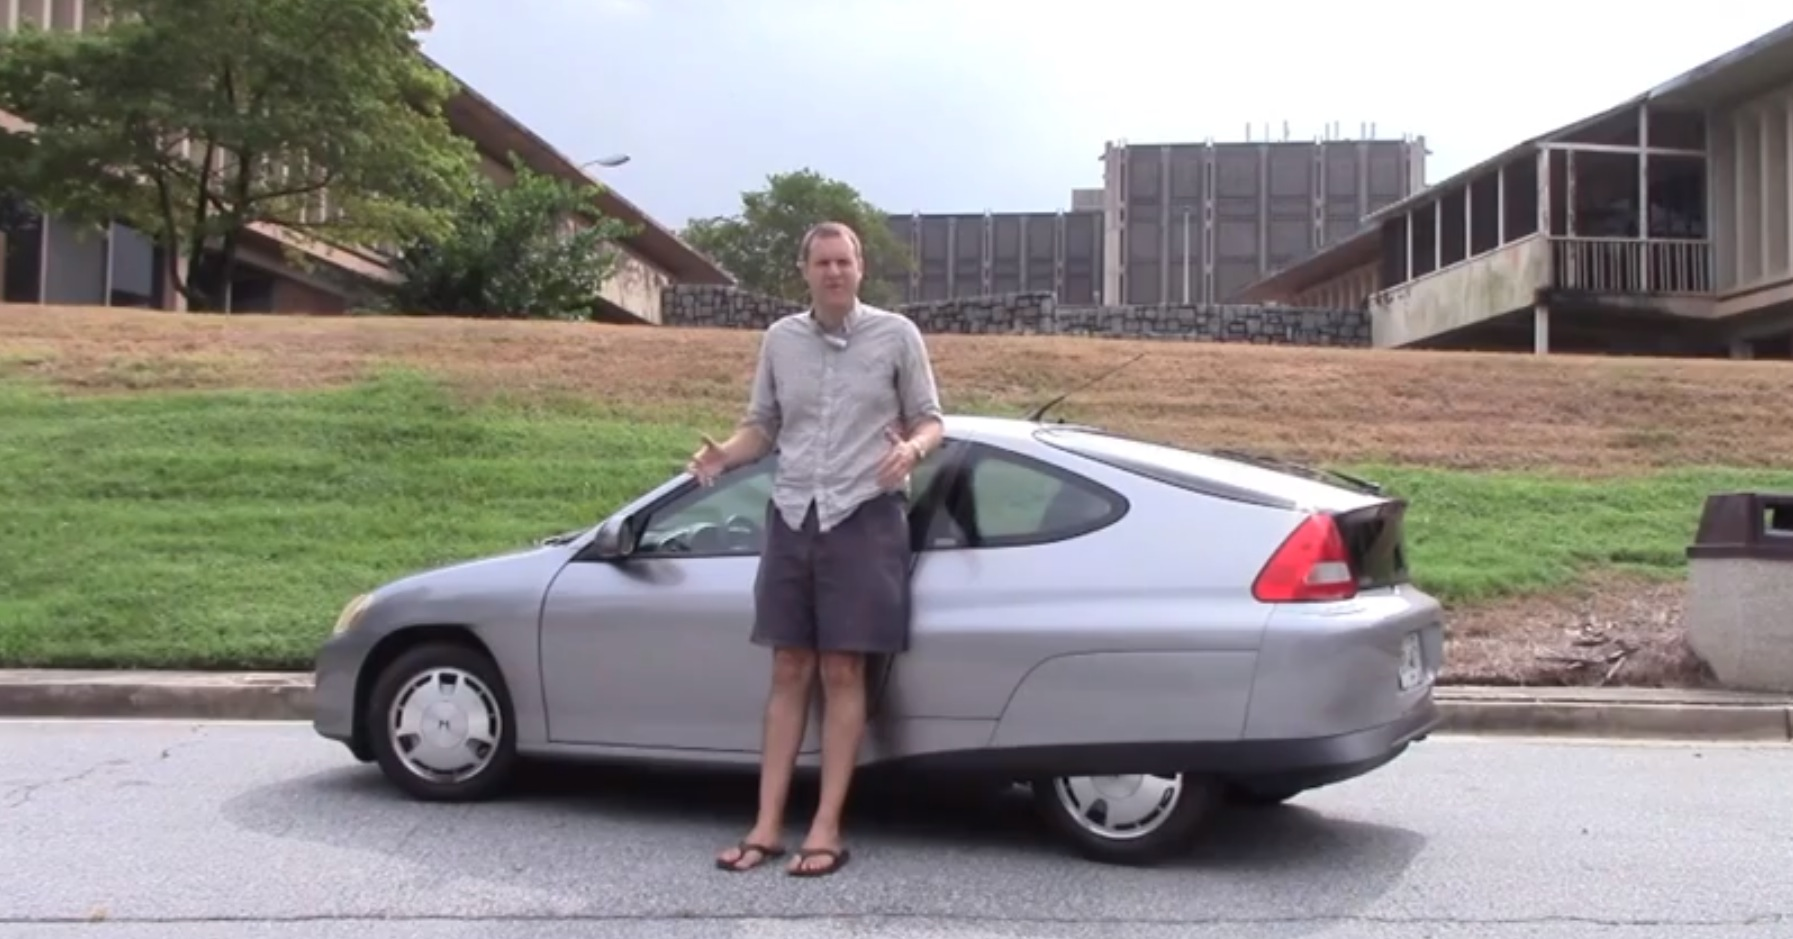 Mdp photo thumbnails further Jingpin  E6 9C AC E7 94 B0 in addition ments also This First Gen Honda Insight Does 714 Mpg Video 85264 as well Yeni Toyota C Hr Hibrit Fiyatlari 4768. on honda cvt